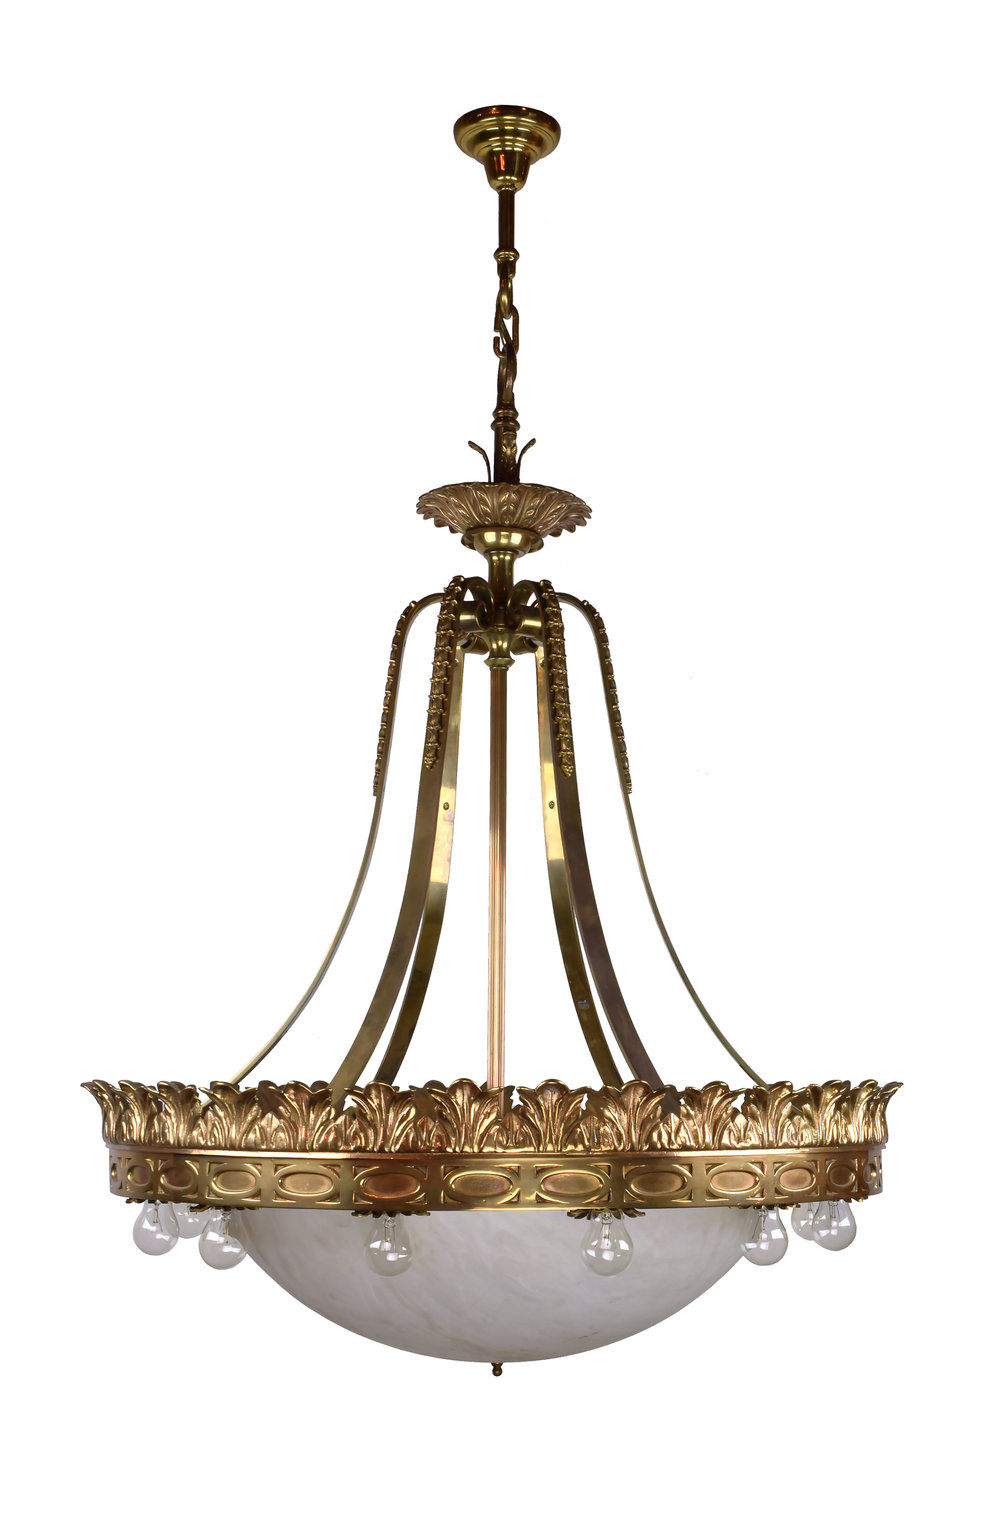 47134-bronze-chandelier-straight-on-view.jpg